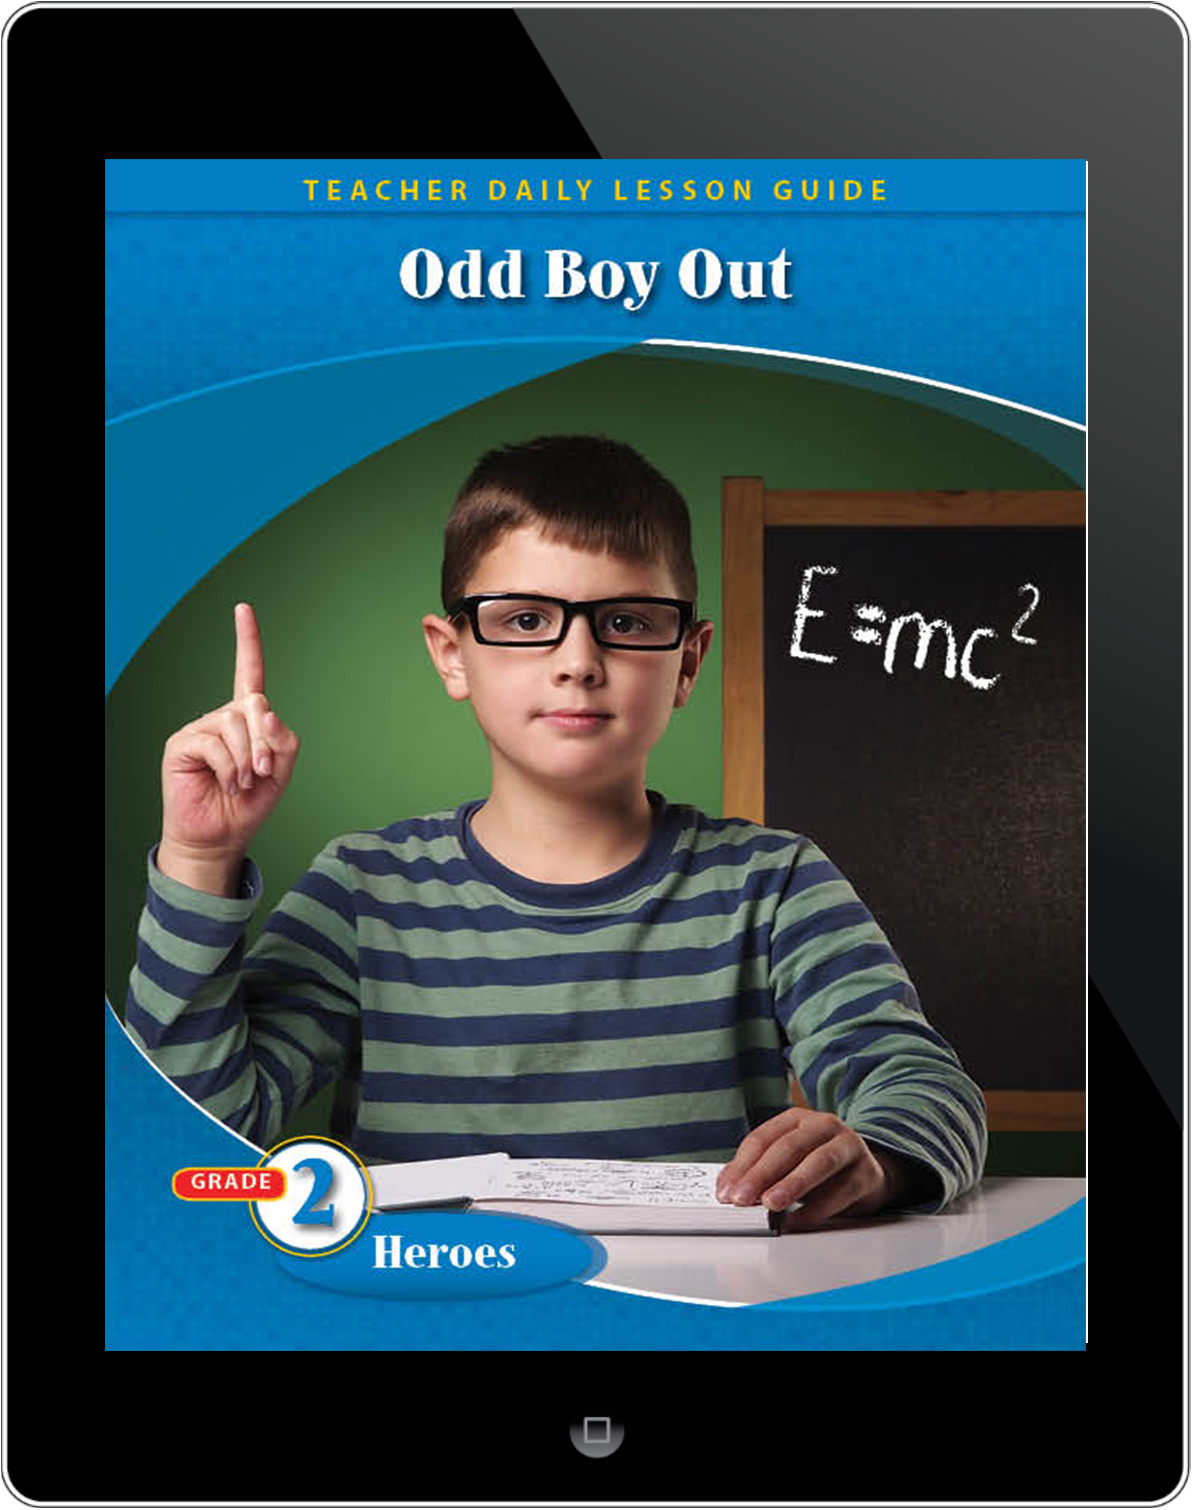 Pathways2.0 Grade 2 Heroes Unit: Odd Boy Out: Young Albert Einstein Daily Lesson Guide 5 Year License